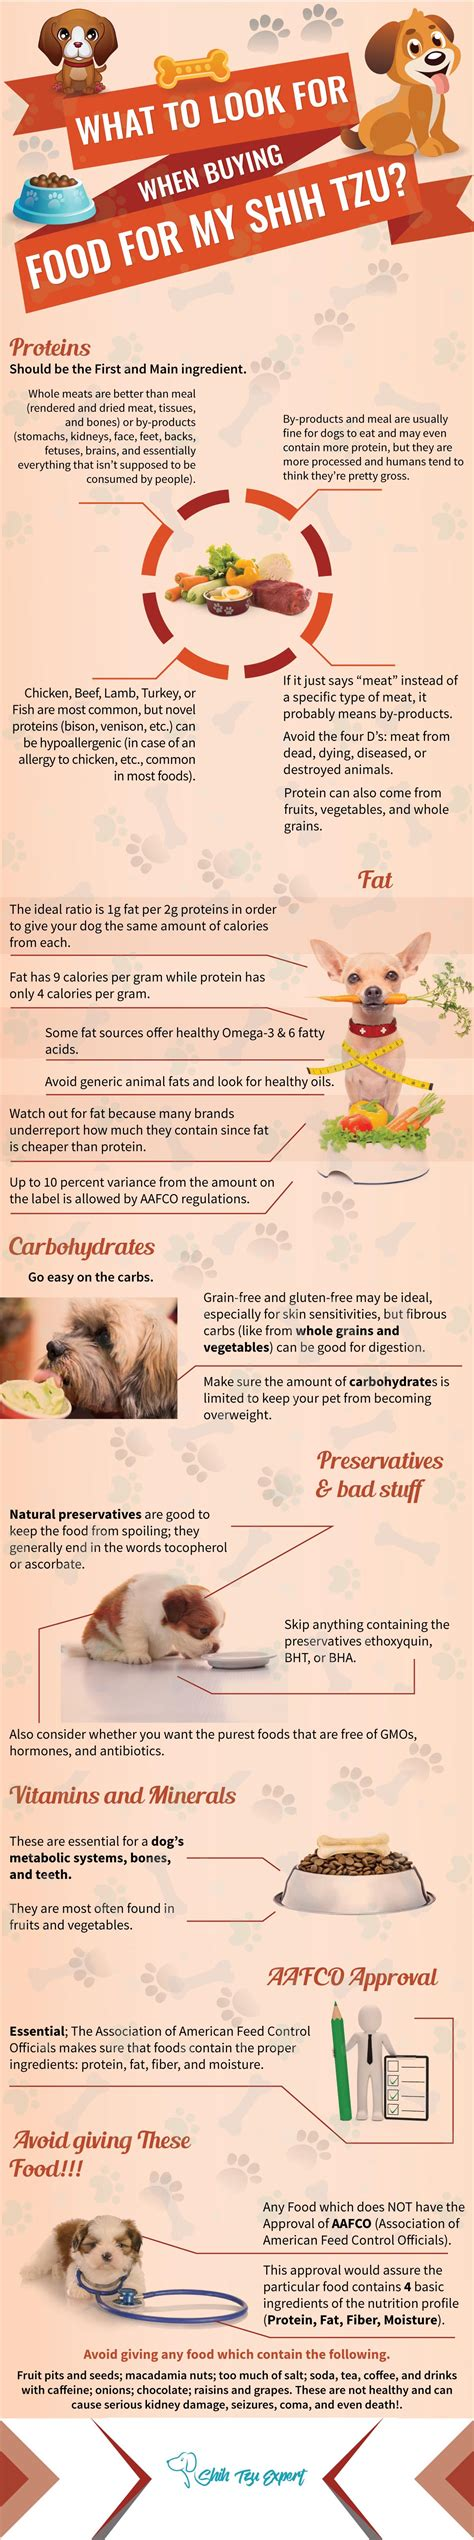 best food for shih tzu what to look for when buying food for a shih tzu infographic